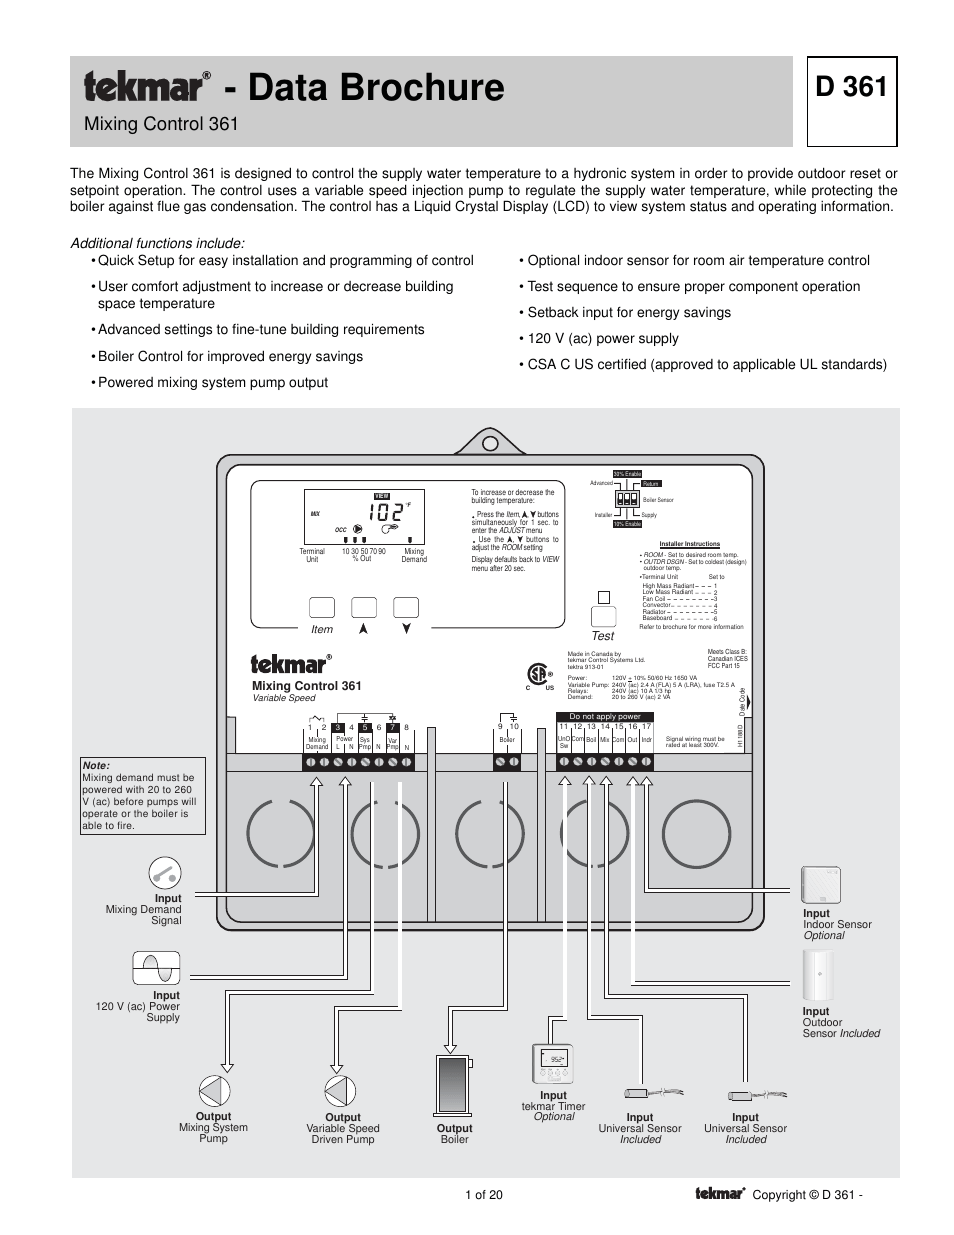 medium resolution of tekmar wiring diagram wire management wiring diagram tekmar 361 mixing control user manual 20 pages